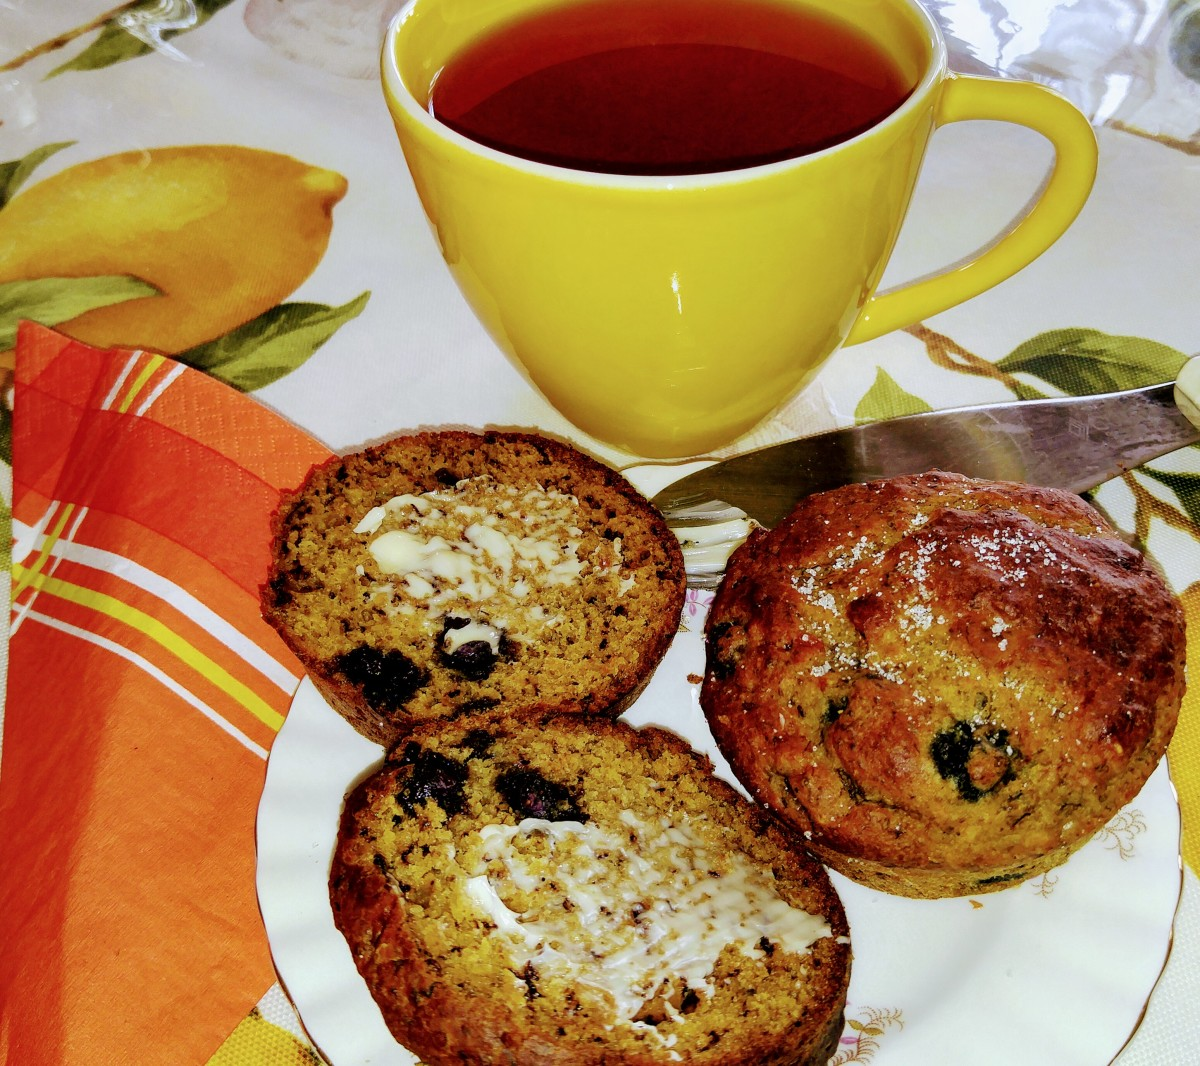 You will feel satisfied and virtuous when you breakfast on these healthy, but yummy, chia seed recipes.  (Find the Chia seed-Banana-Saskatoon-Berry muffin recipe at the bottom of the article)